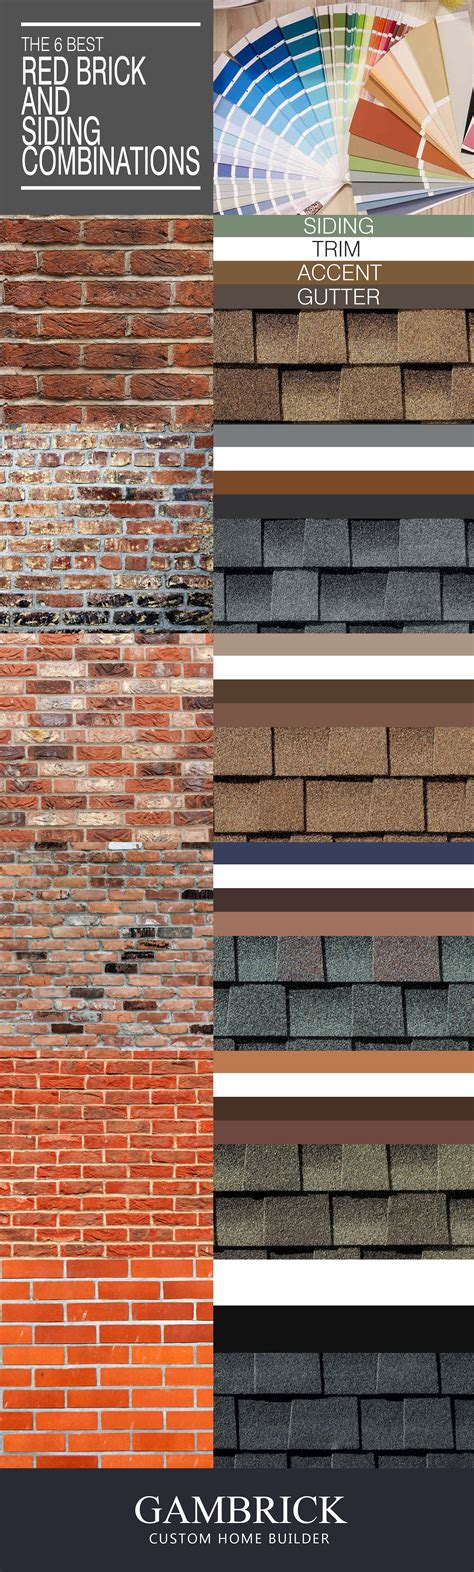 what color siding goes with red brick color combos 2019